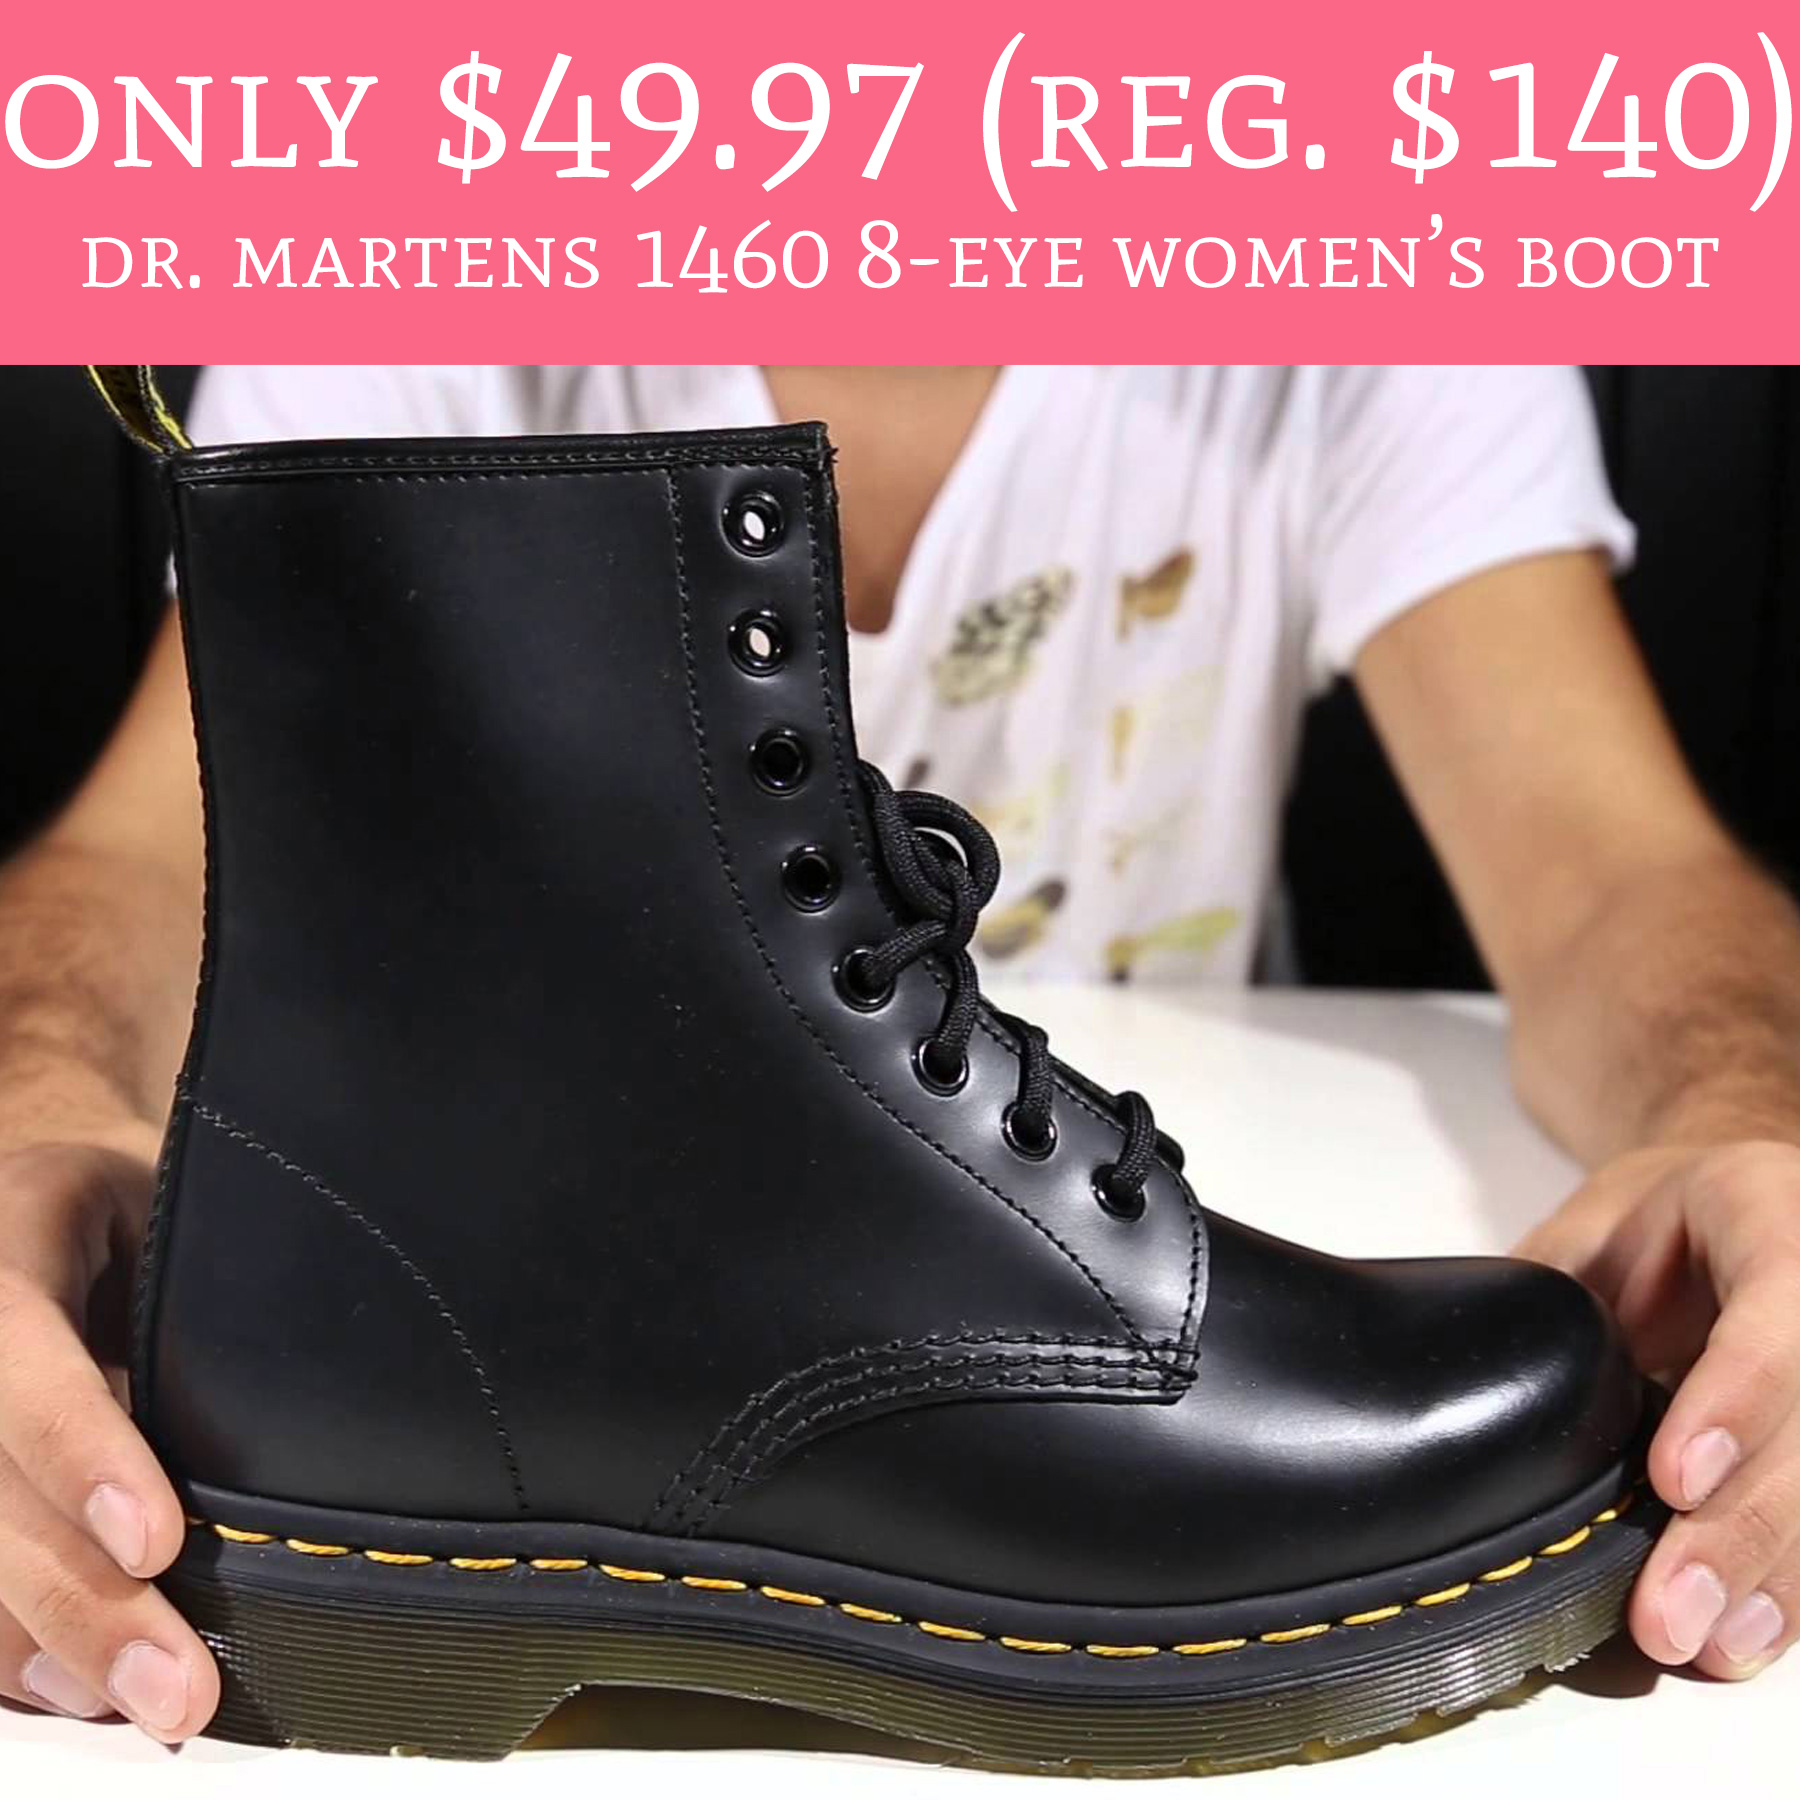 dr martens 1460 8 eye women's boot Deal Hunting Babe